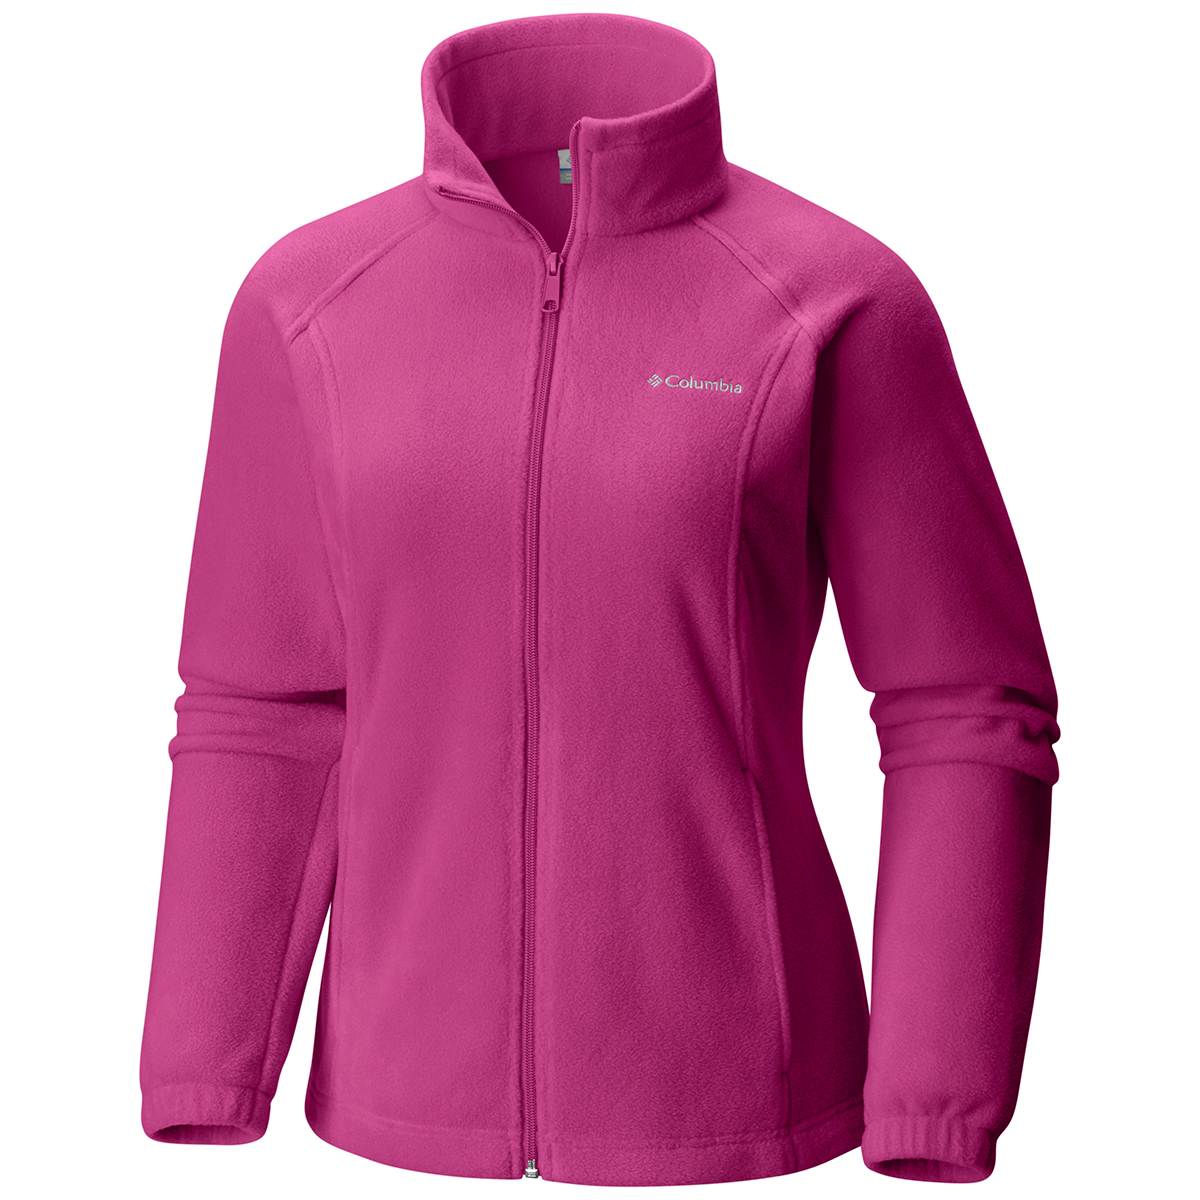 Columbia Women's Benton Springs Fleece Jacket - Red, M